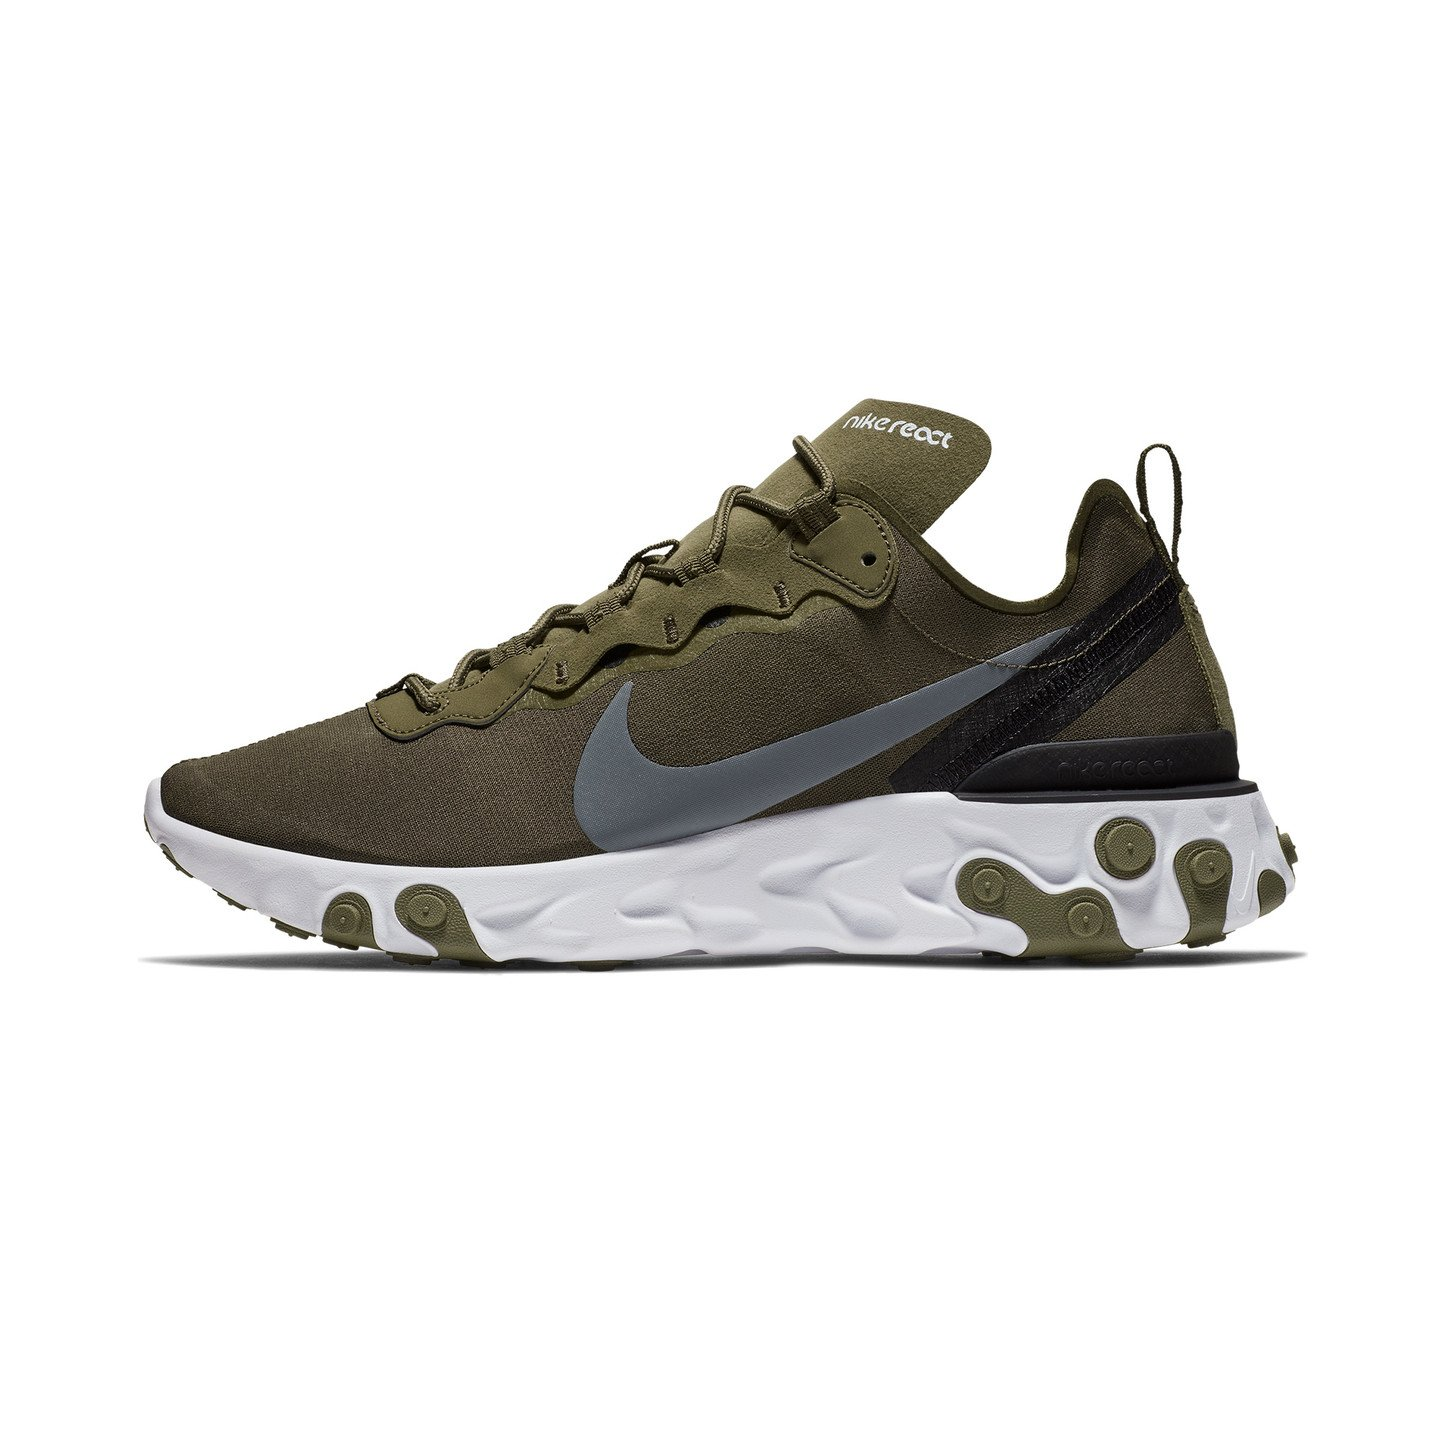 Nike React Element 55 Medium Olive / Cool Grey / Black / White BQ6166-200